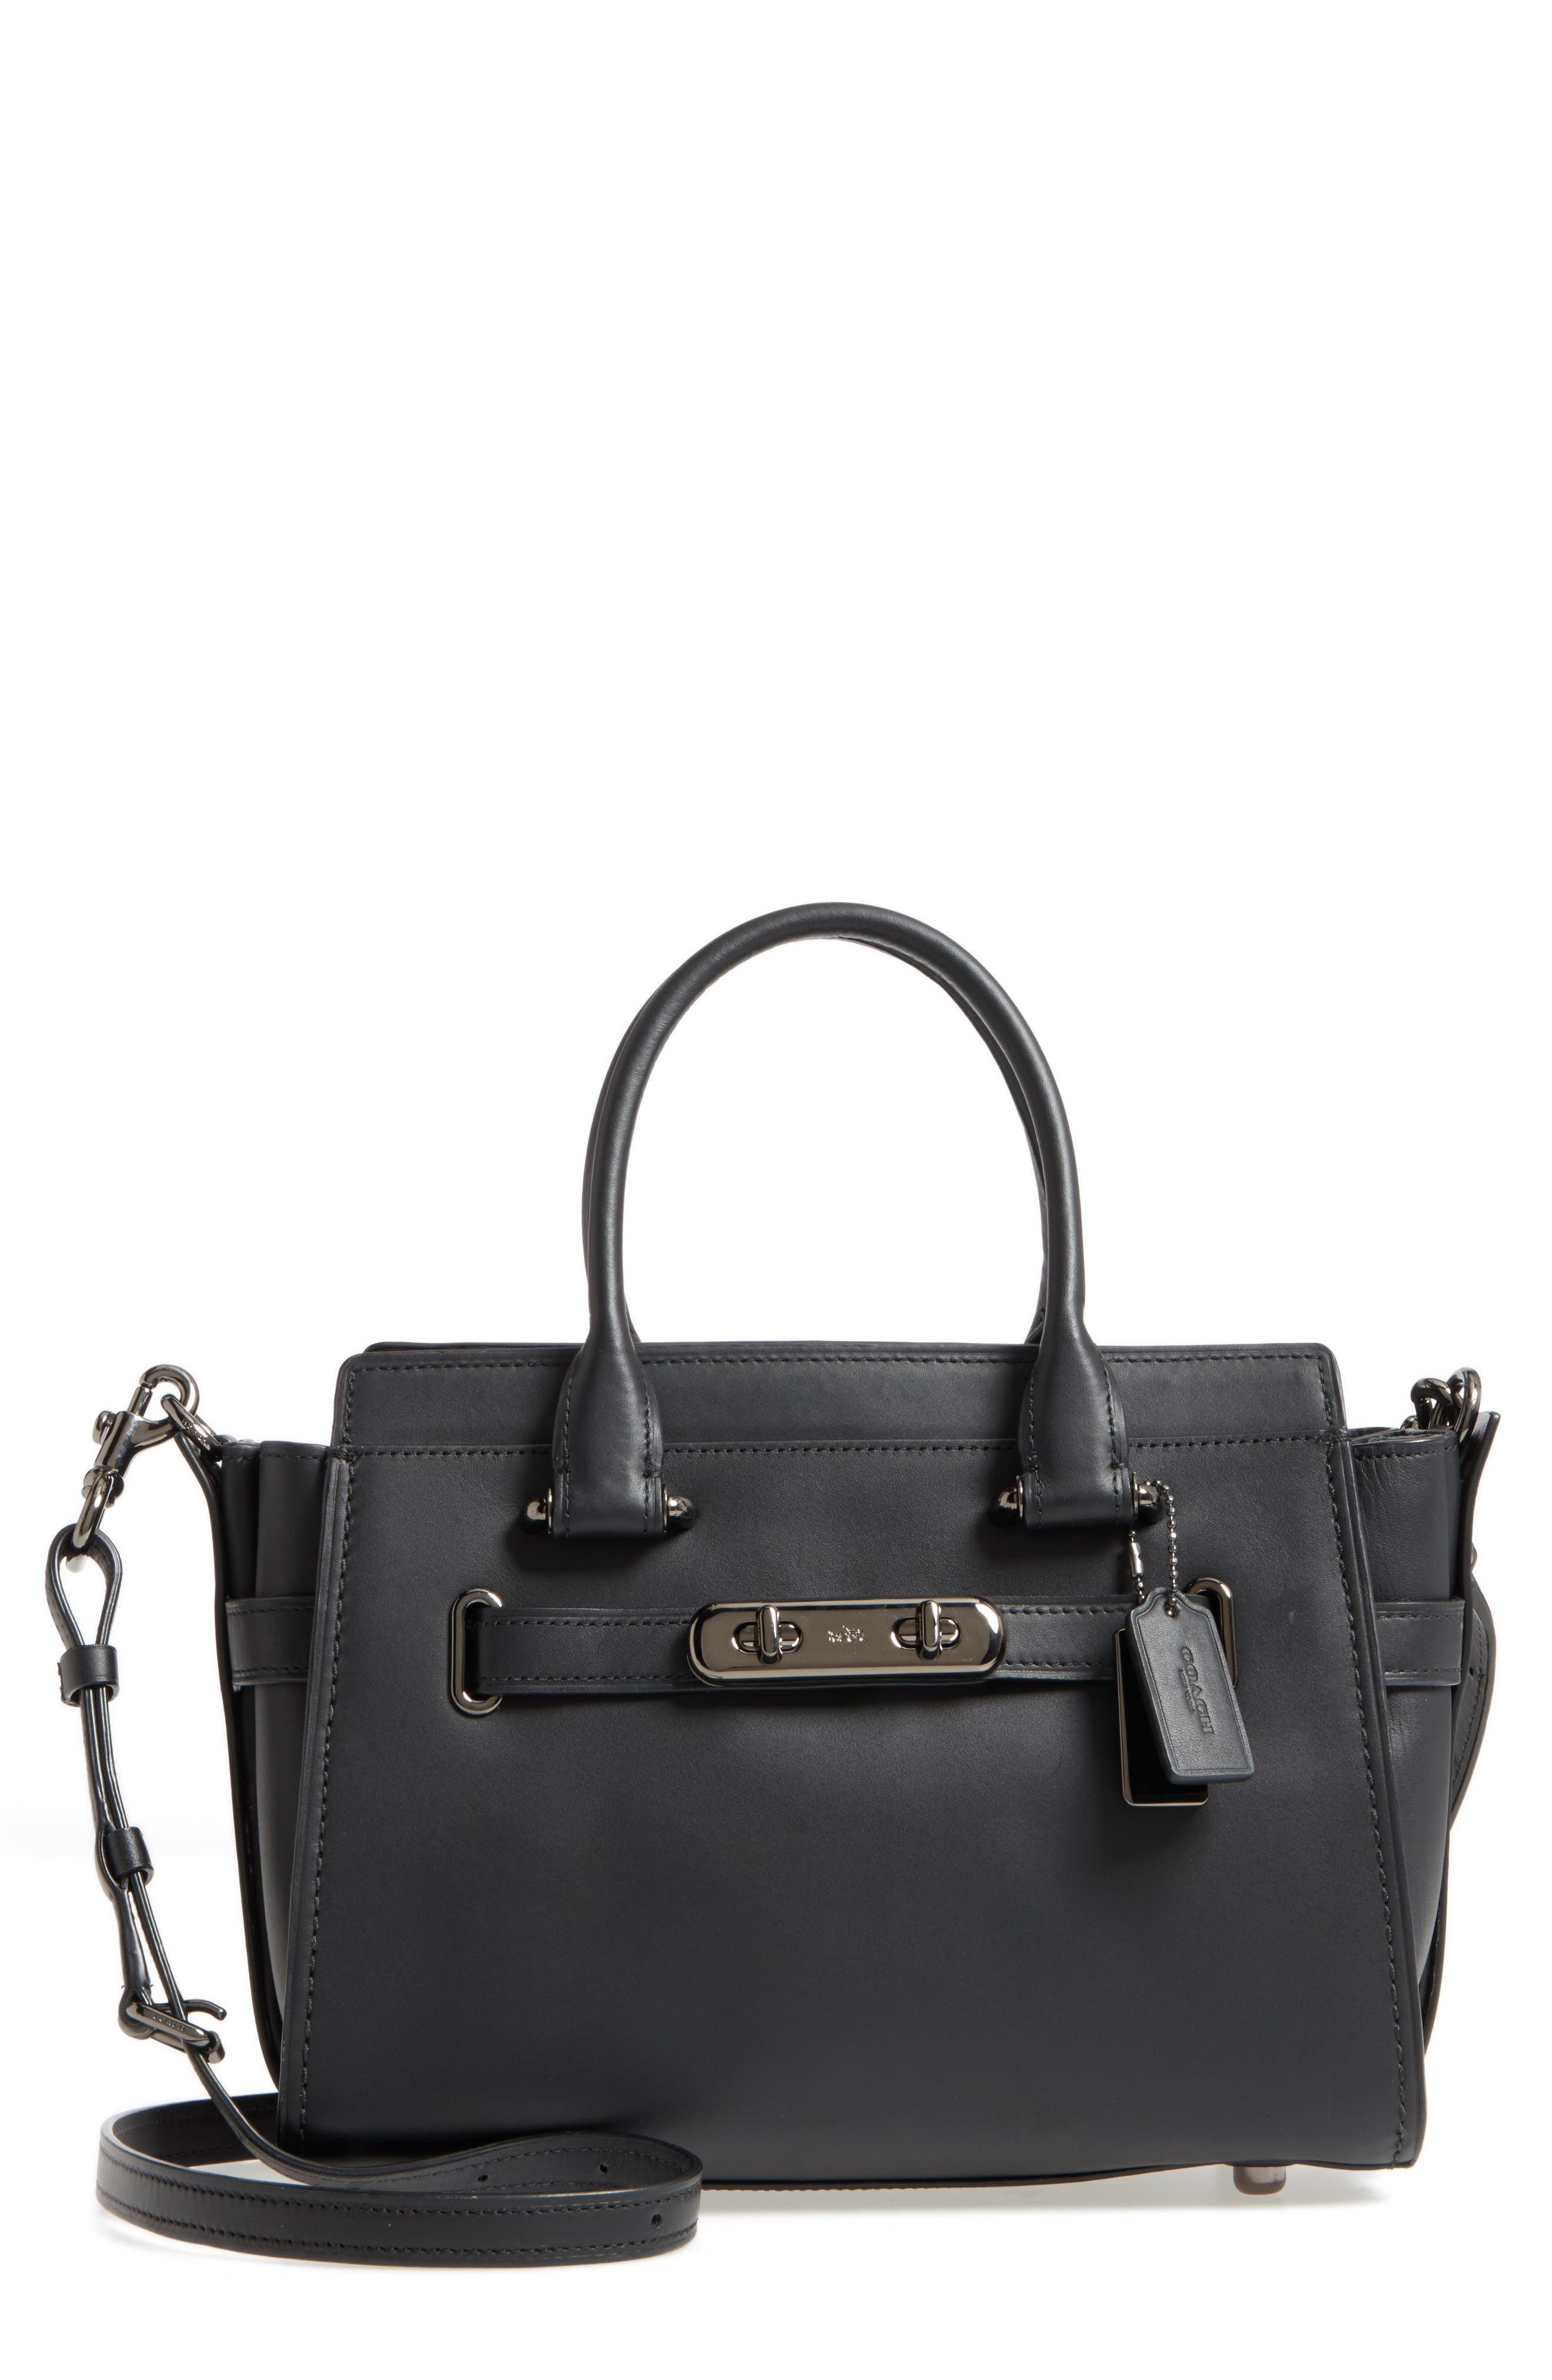 Alternate Image 1 Selected - COACH Swagger 27 Calfskin Leather Satchel